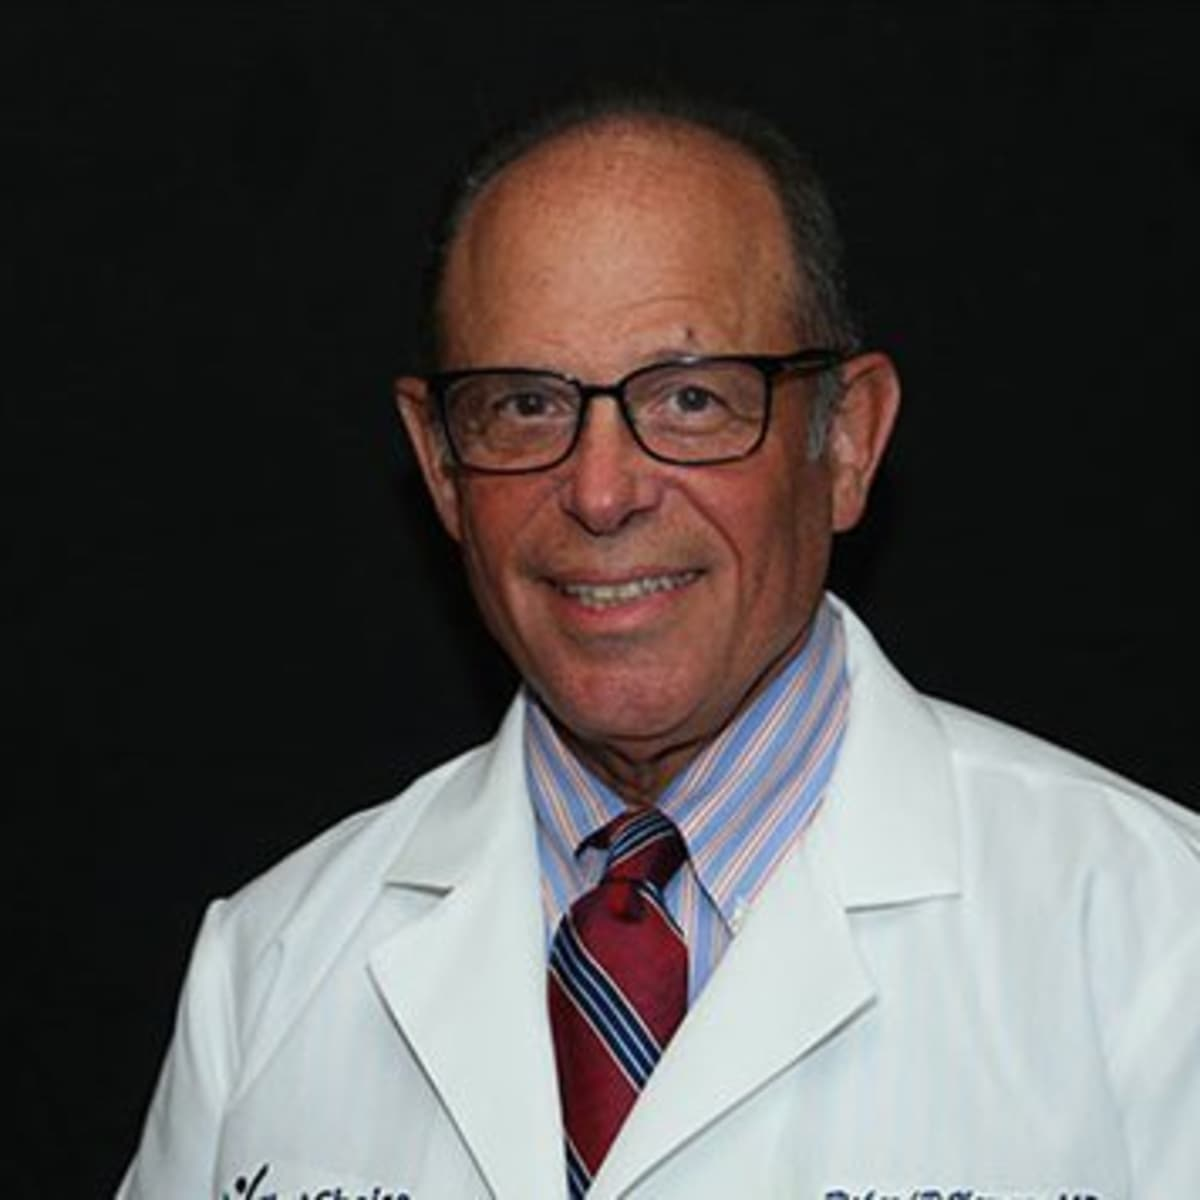 dr richard newman md melbourne fl neurologist